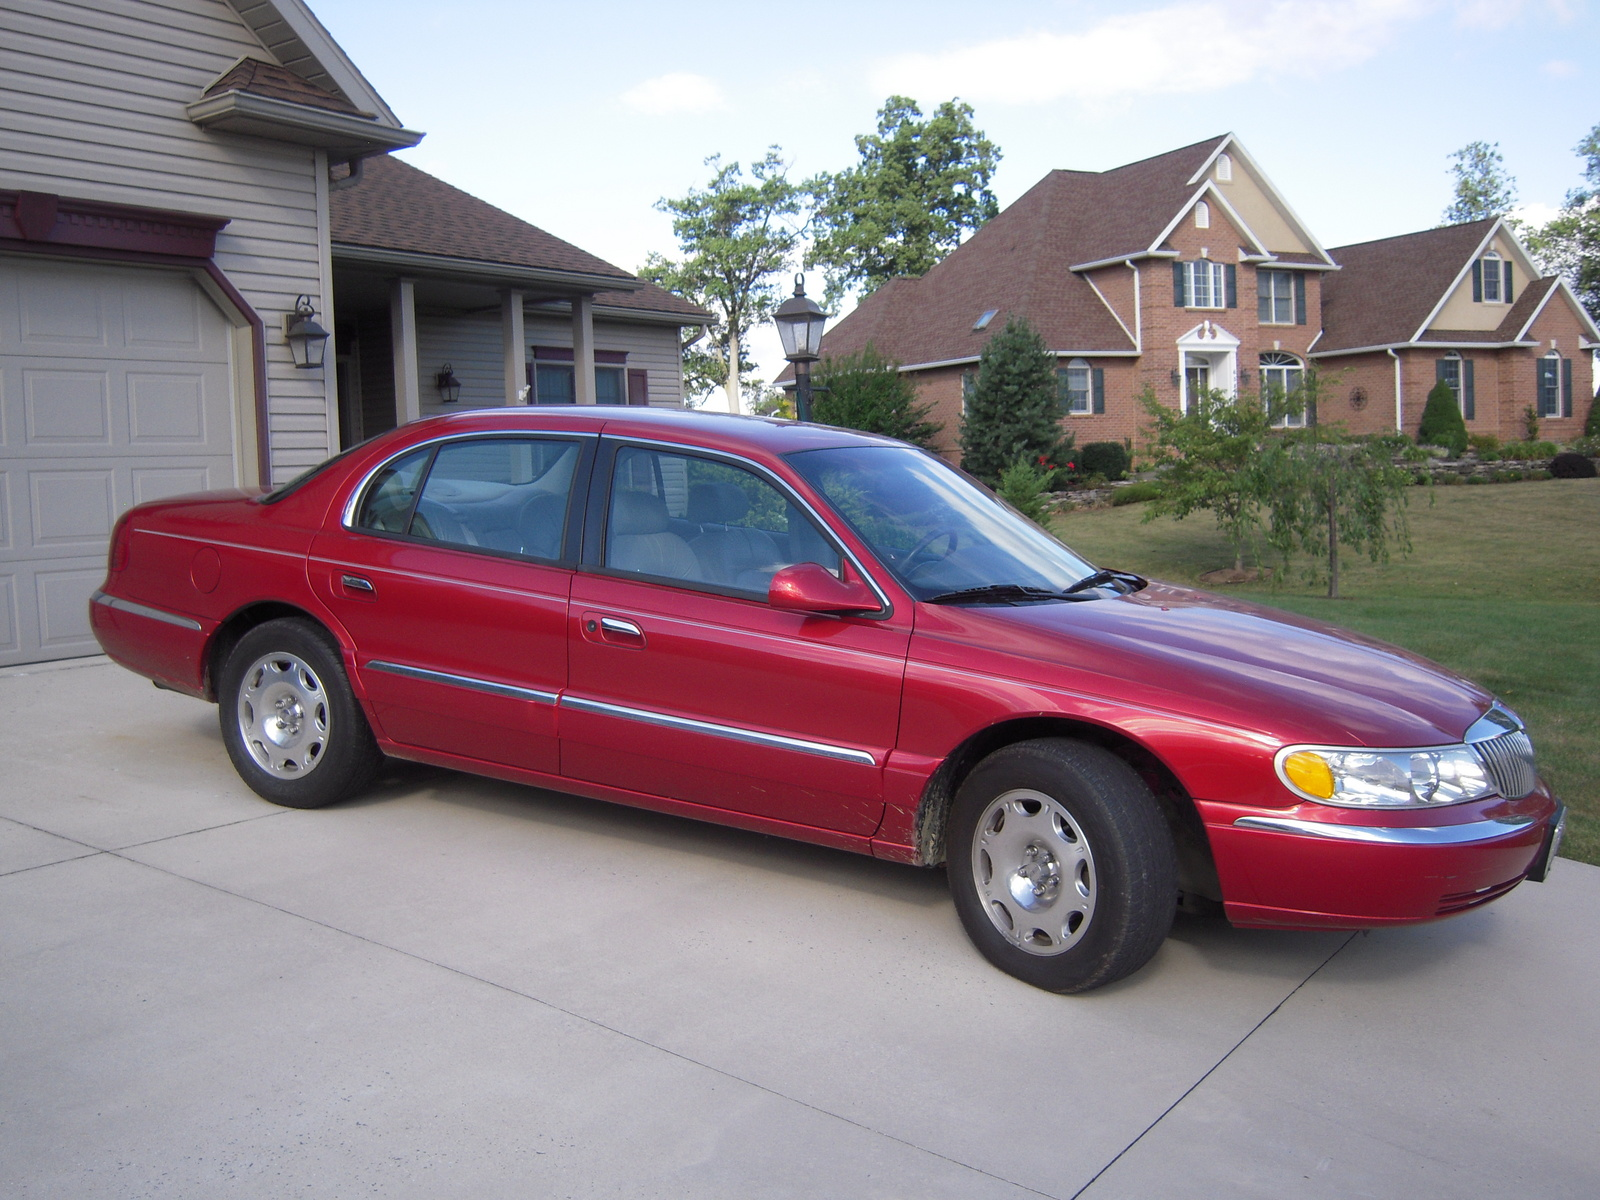 1998 Lincoln Continental - Pictures